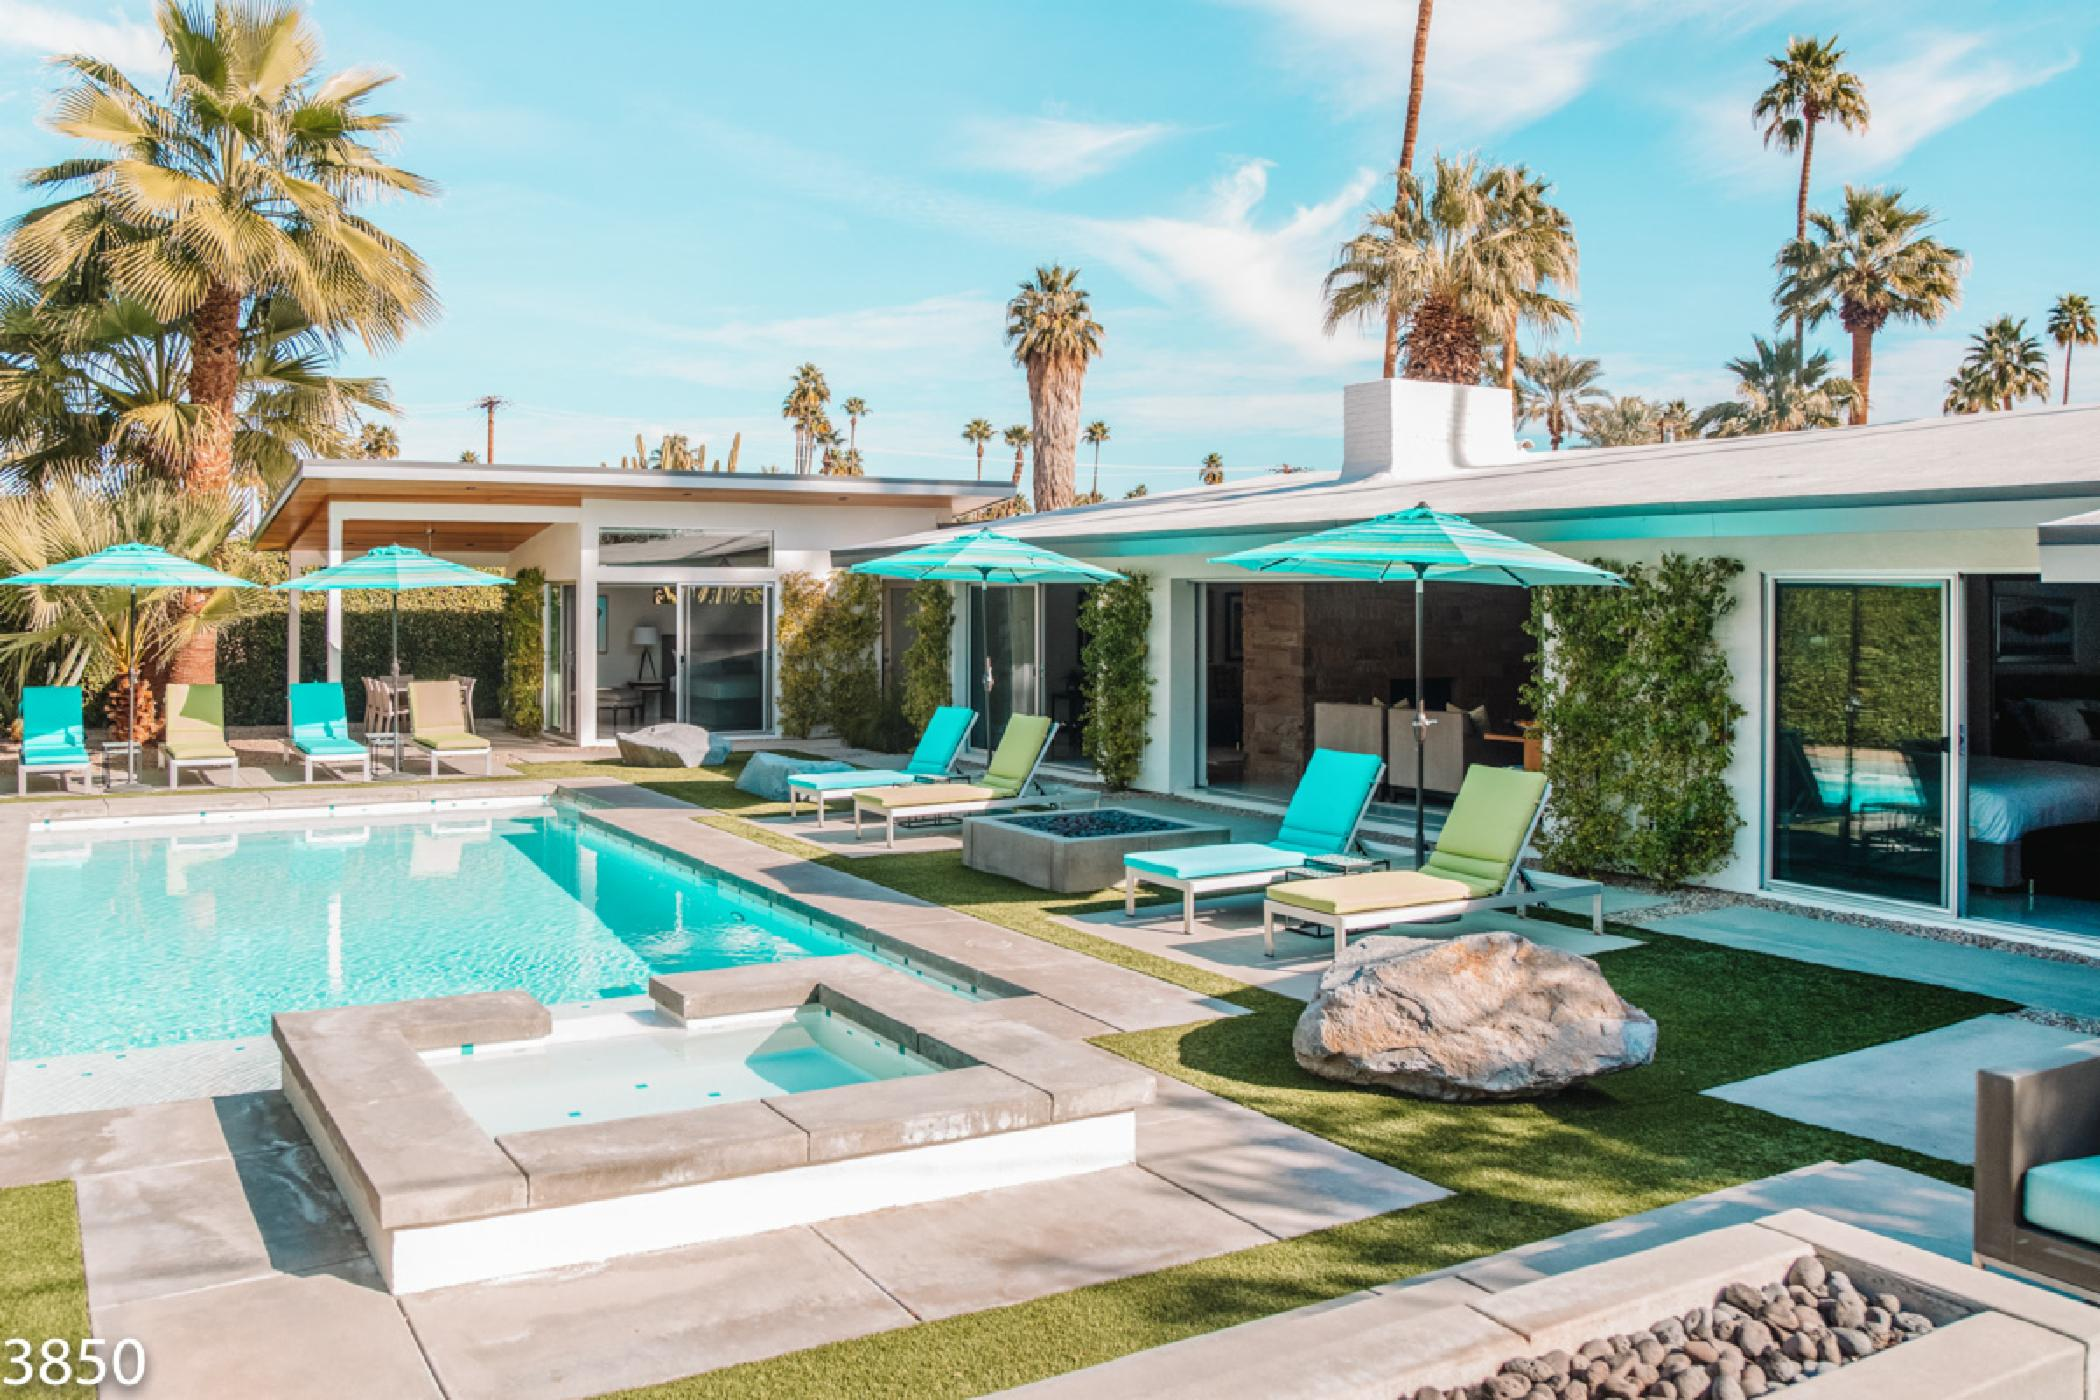 Beautiful Mid-century Villa with Poolside bar and Amazing views